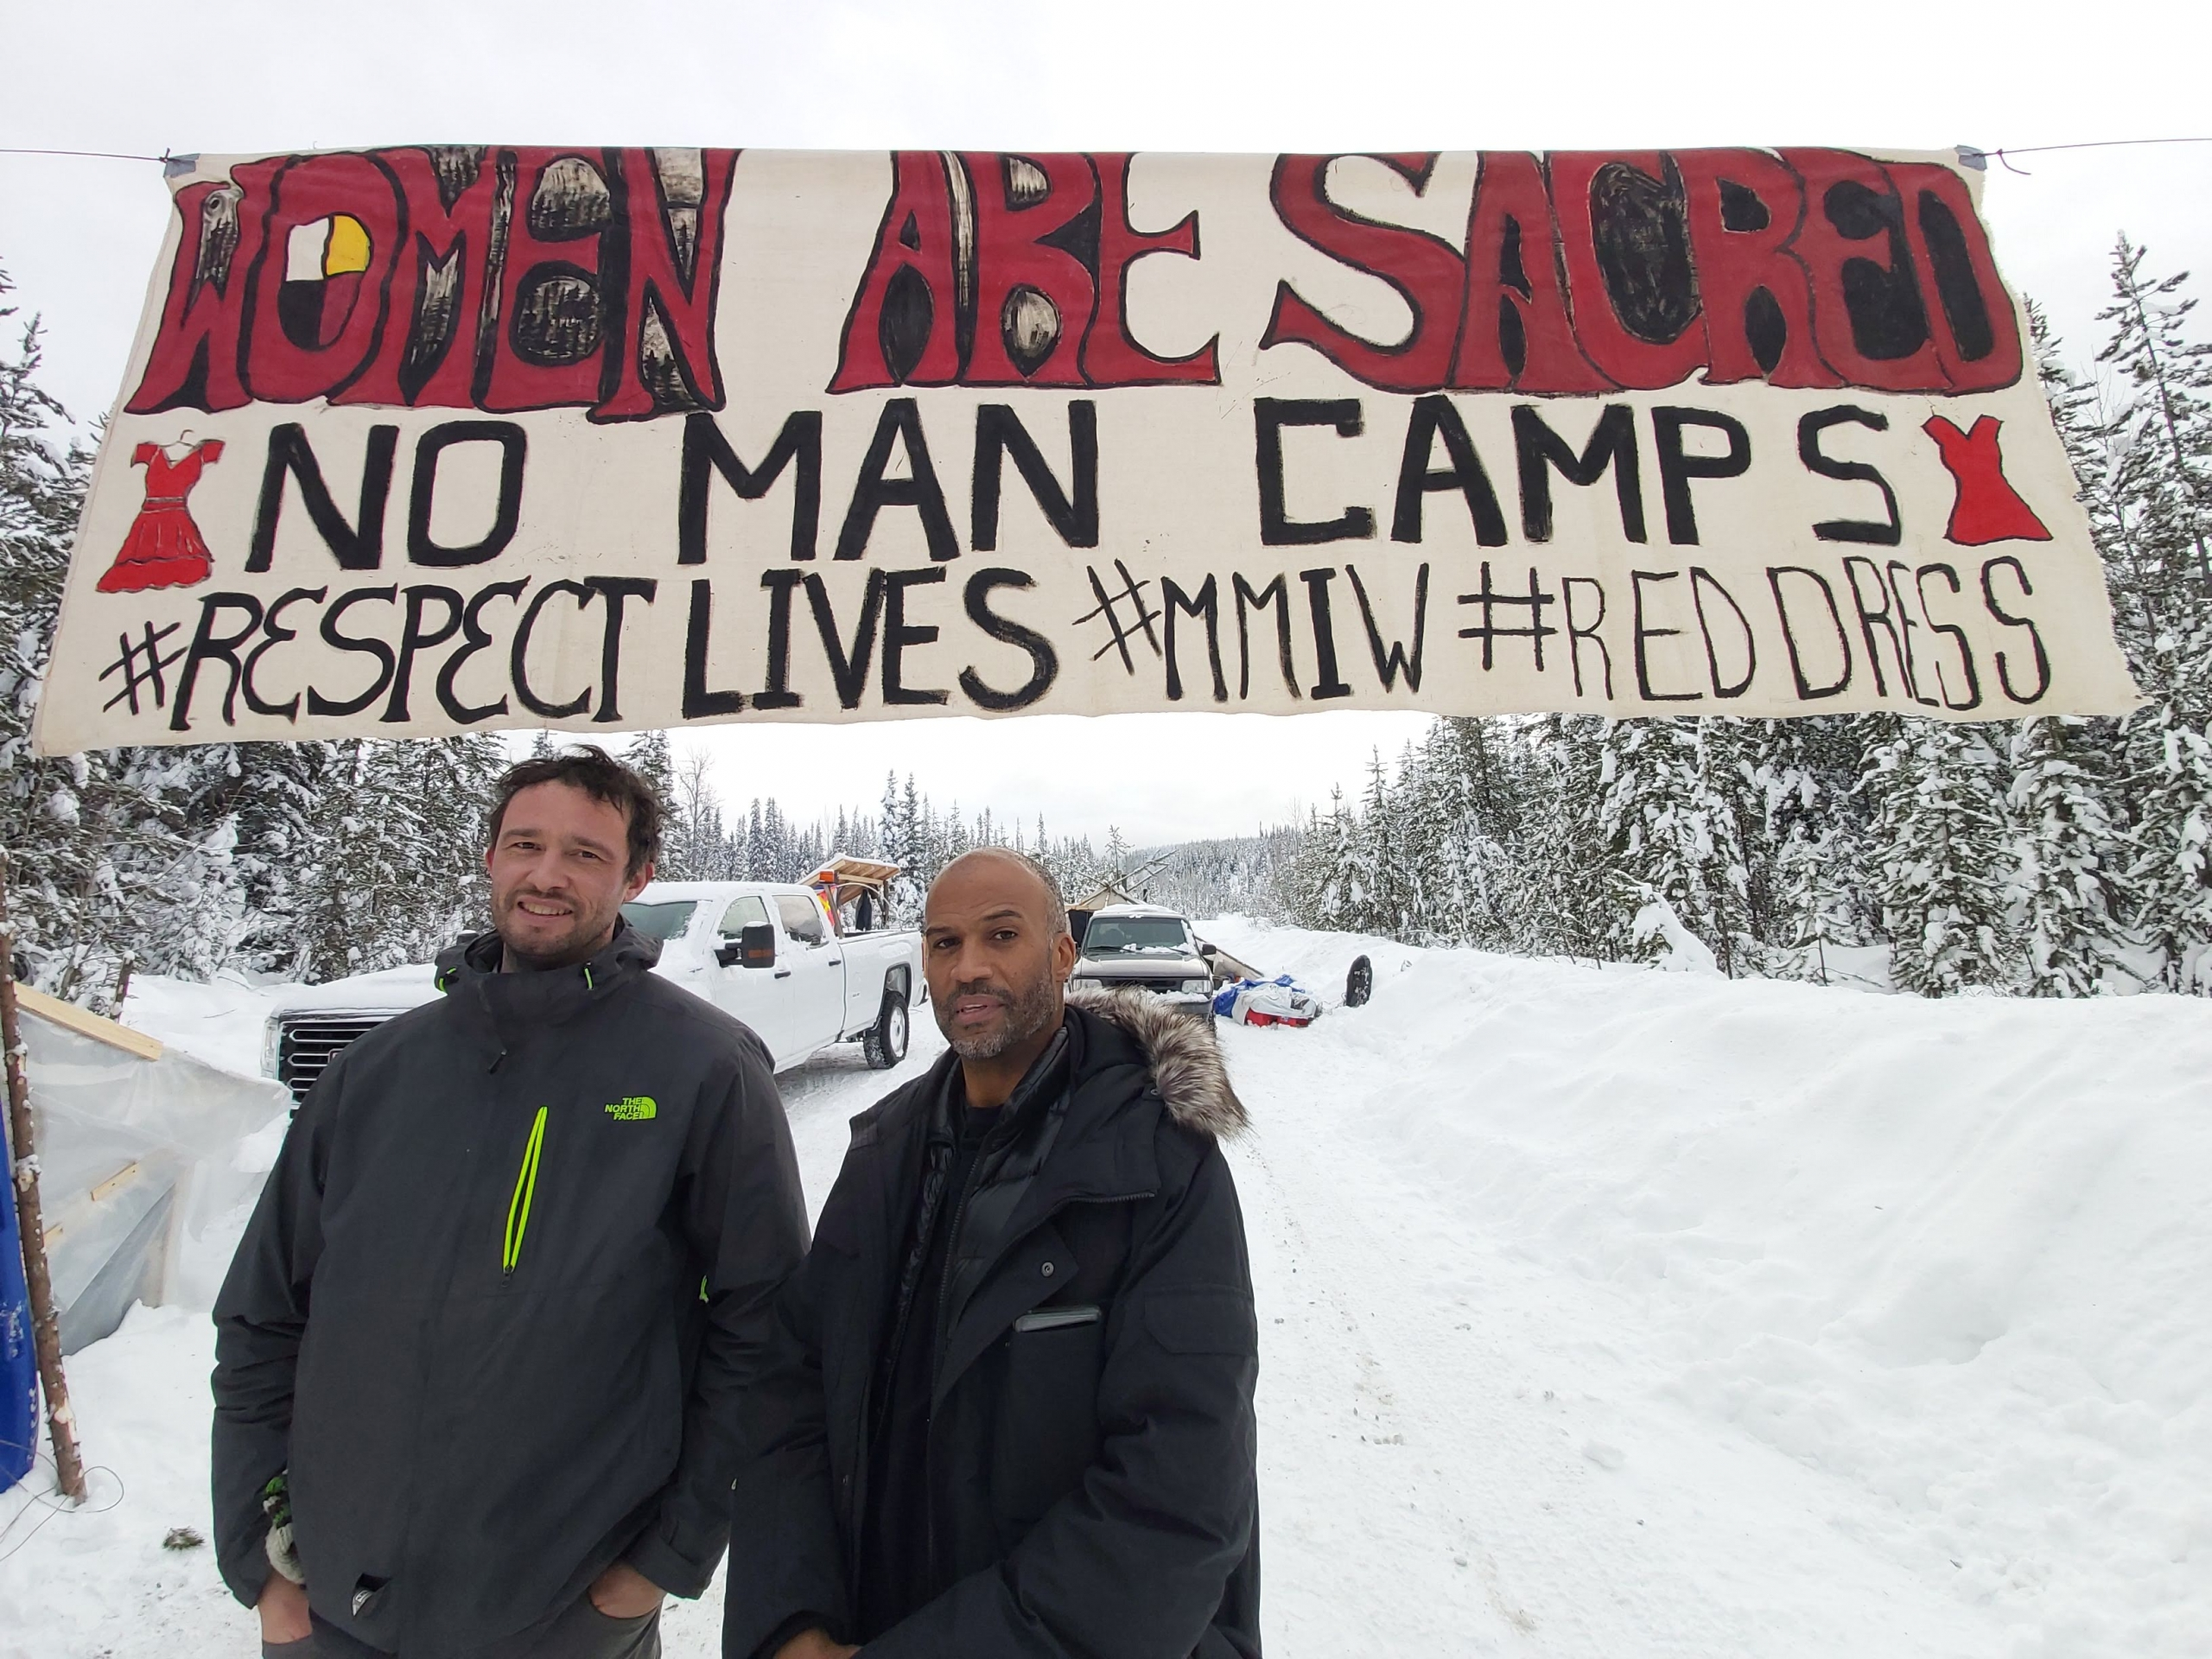 Noah with Carl Williams at the kilometre 39 camp which was dismantled by RCMP on February 6, 2020 (Photo by Jerome Turner)